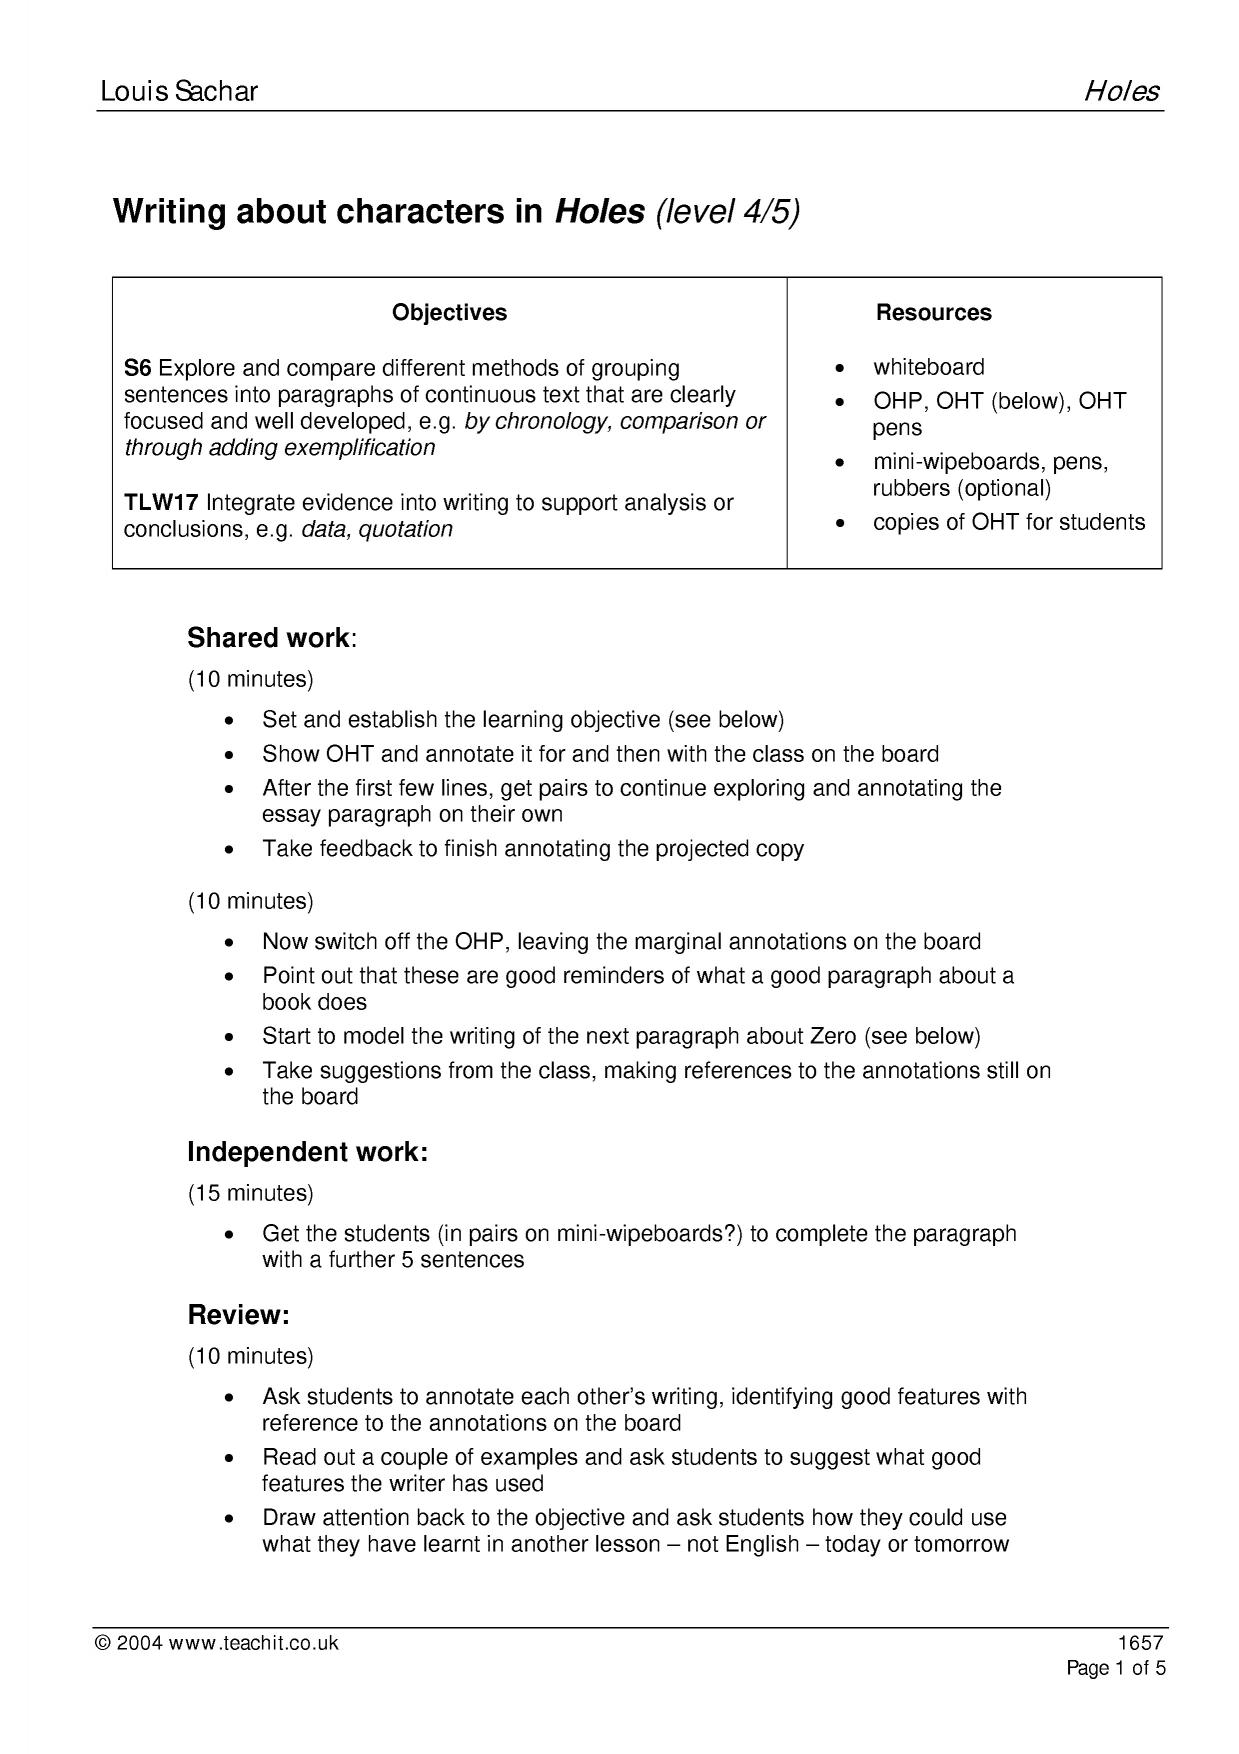 Essays For High School Students To Read Amazon Com Conquering The College Admissions Essay In Steps Amazon Com  Conquering The College Admissions Essay Essay Thesis Statements also Science And Technology Essays My Essay Wizard   Online Custom Essay Writing Service Essay On  Thesis Statement For Persuasive Essay